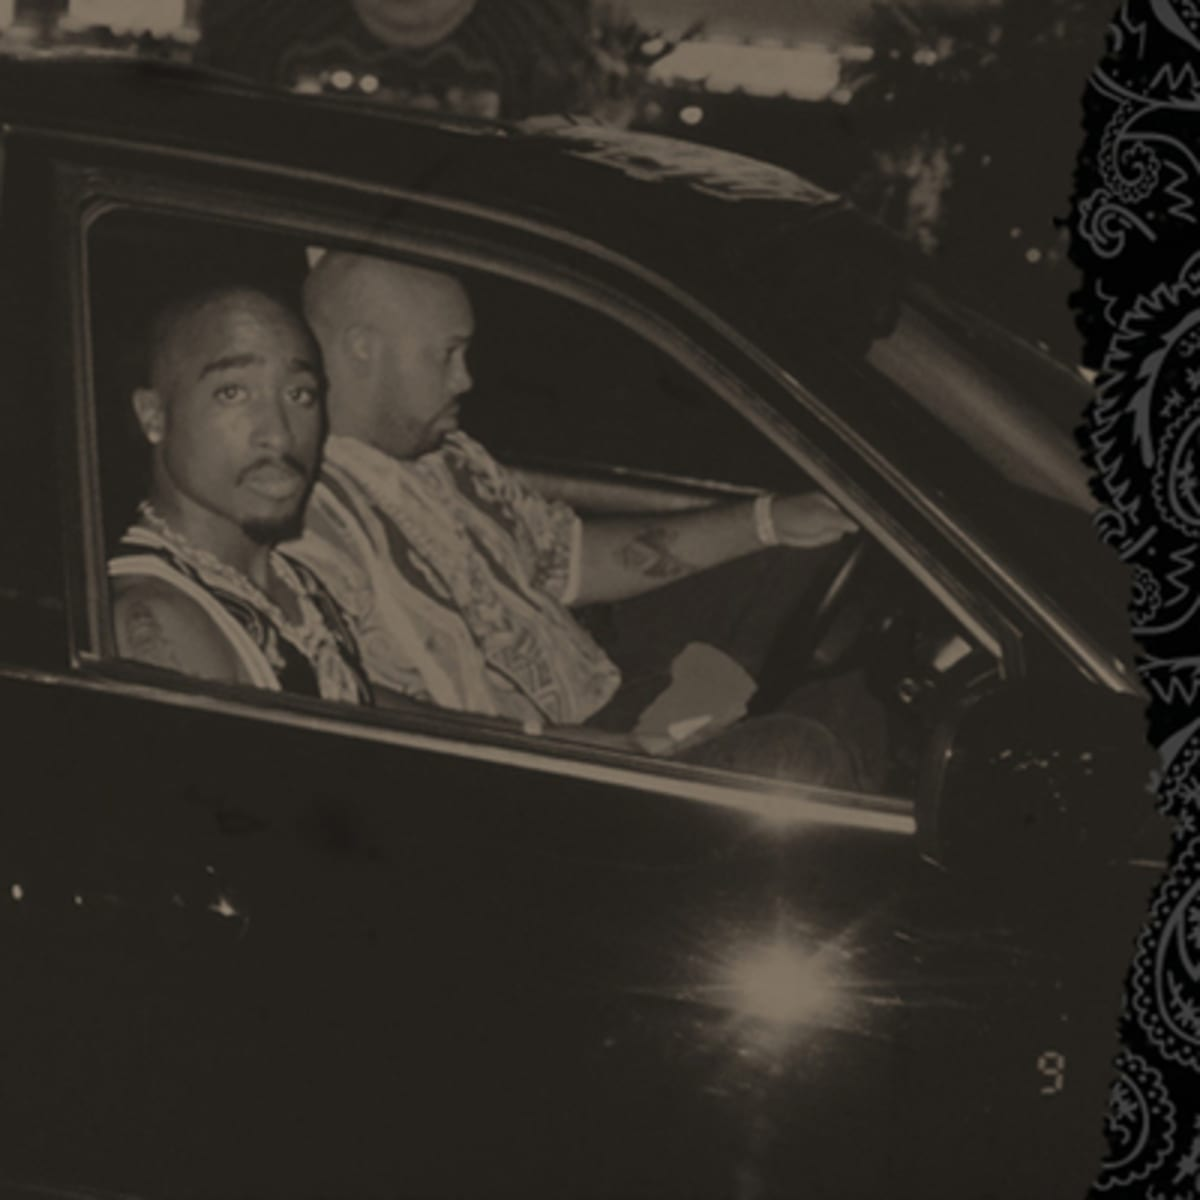 The story behind the final photograph of 2pac complex